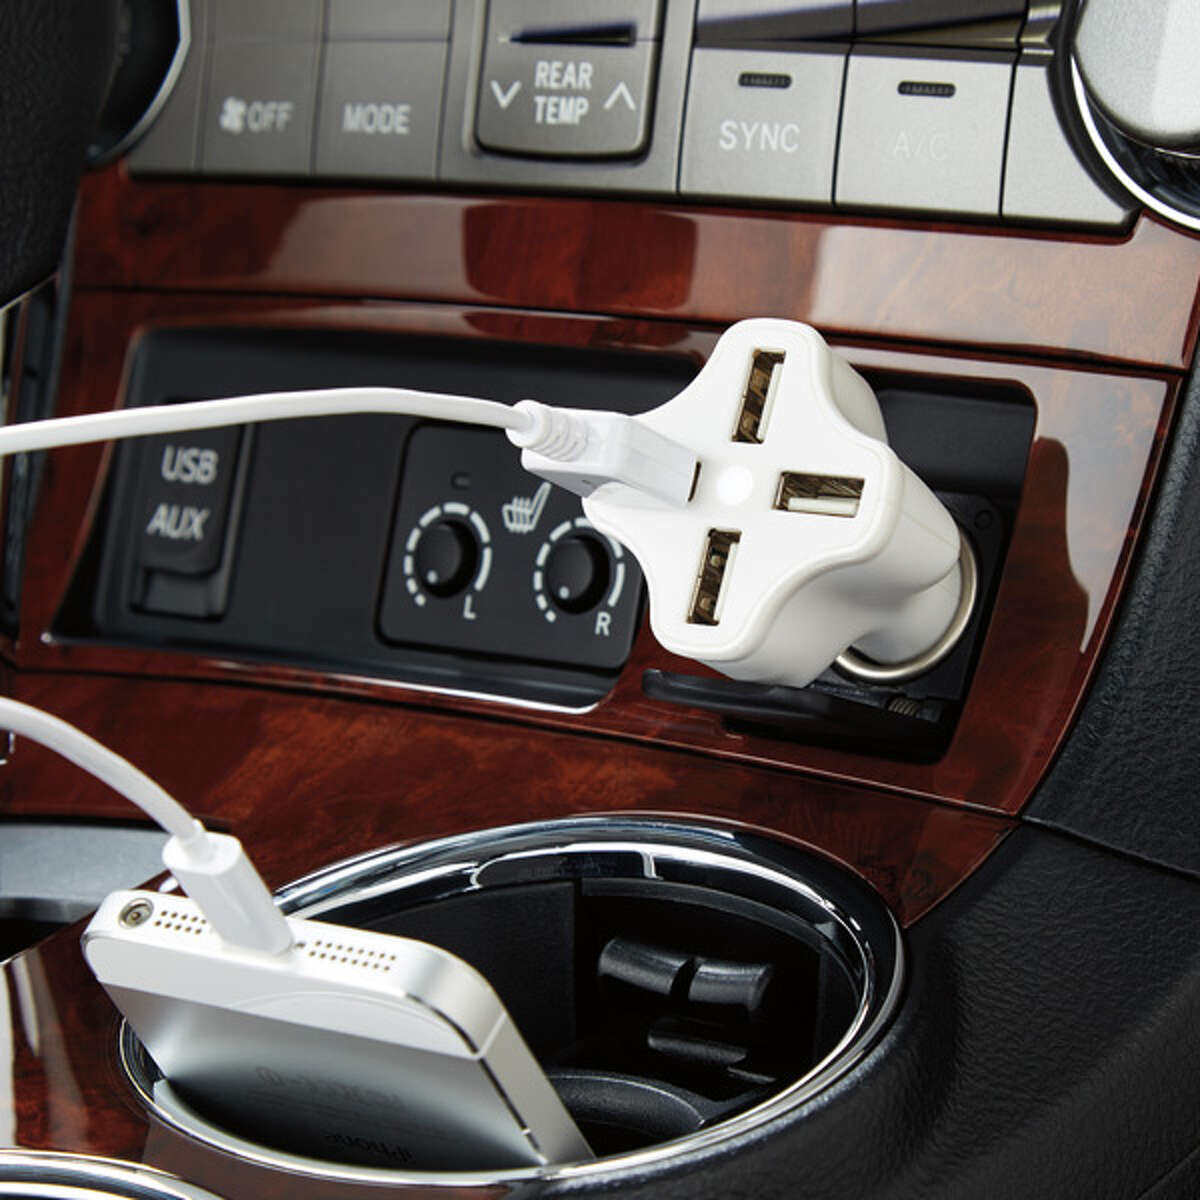 A Four-Port USB car charger from The Container Store makes it easy to keep everyone's cellphones charged during road trips.